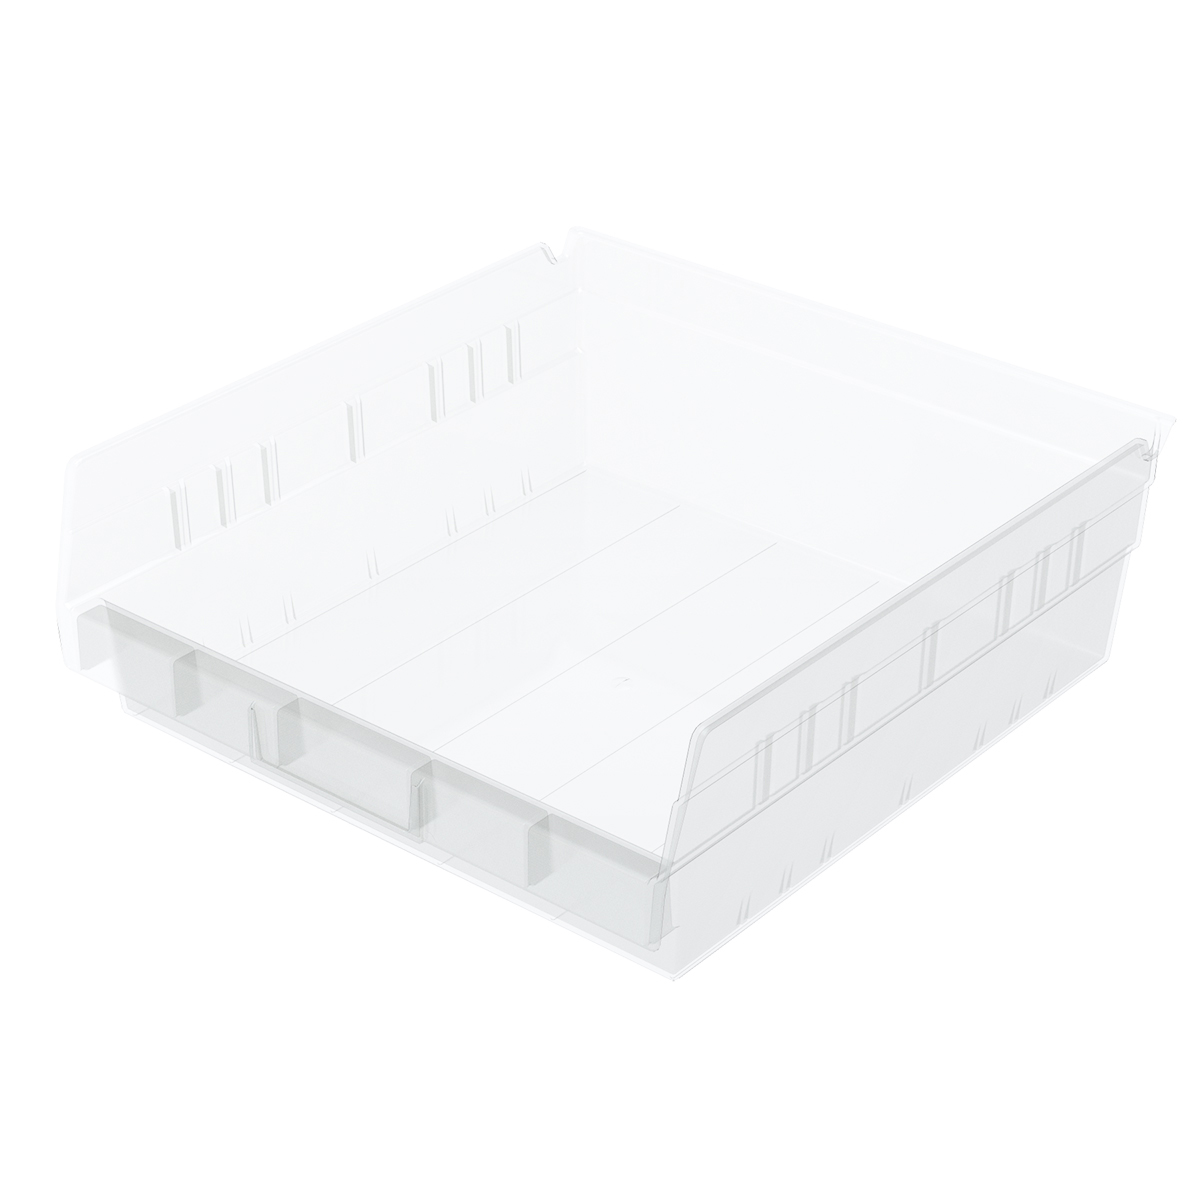 Shelf Bin 11-5/8 x 11-1/8 x 4, Clear (30170SCLAR).  This item sold in carton quantities of 12.